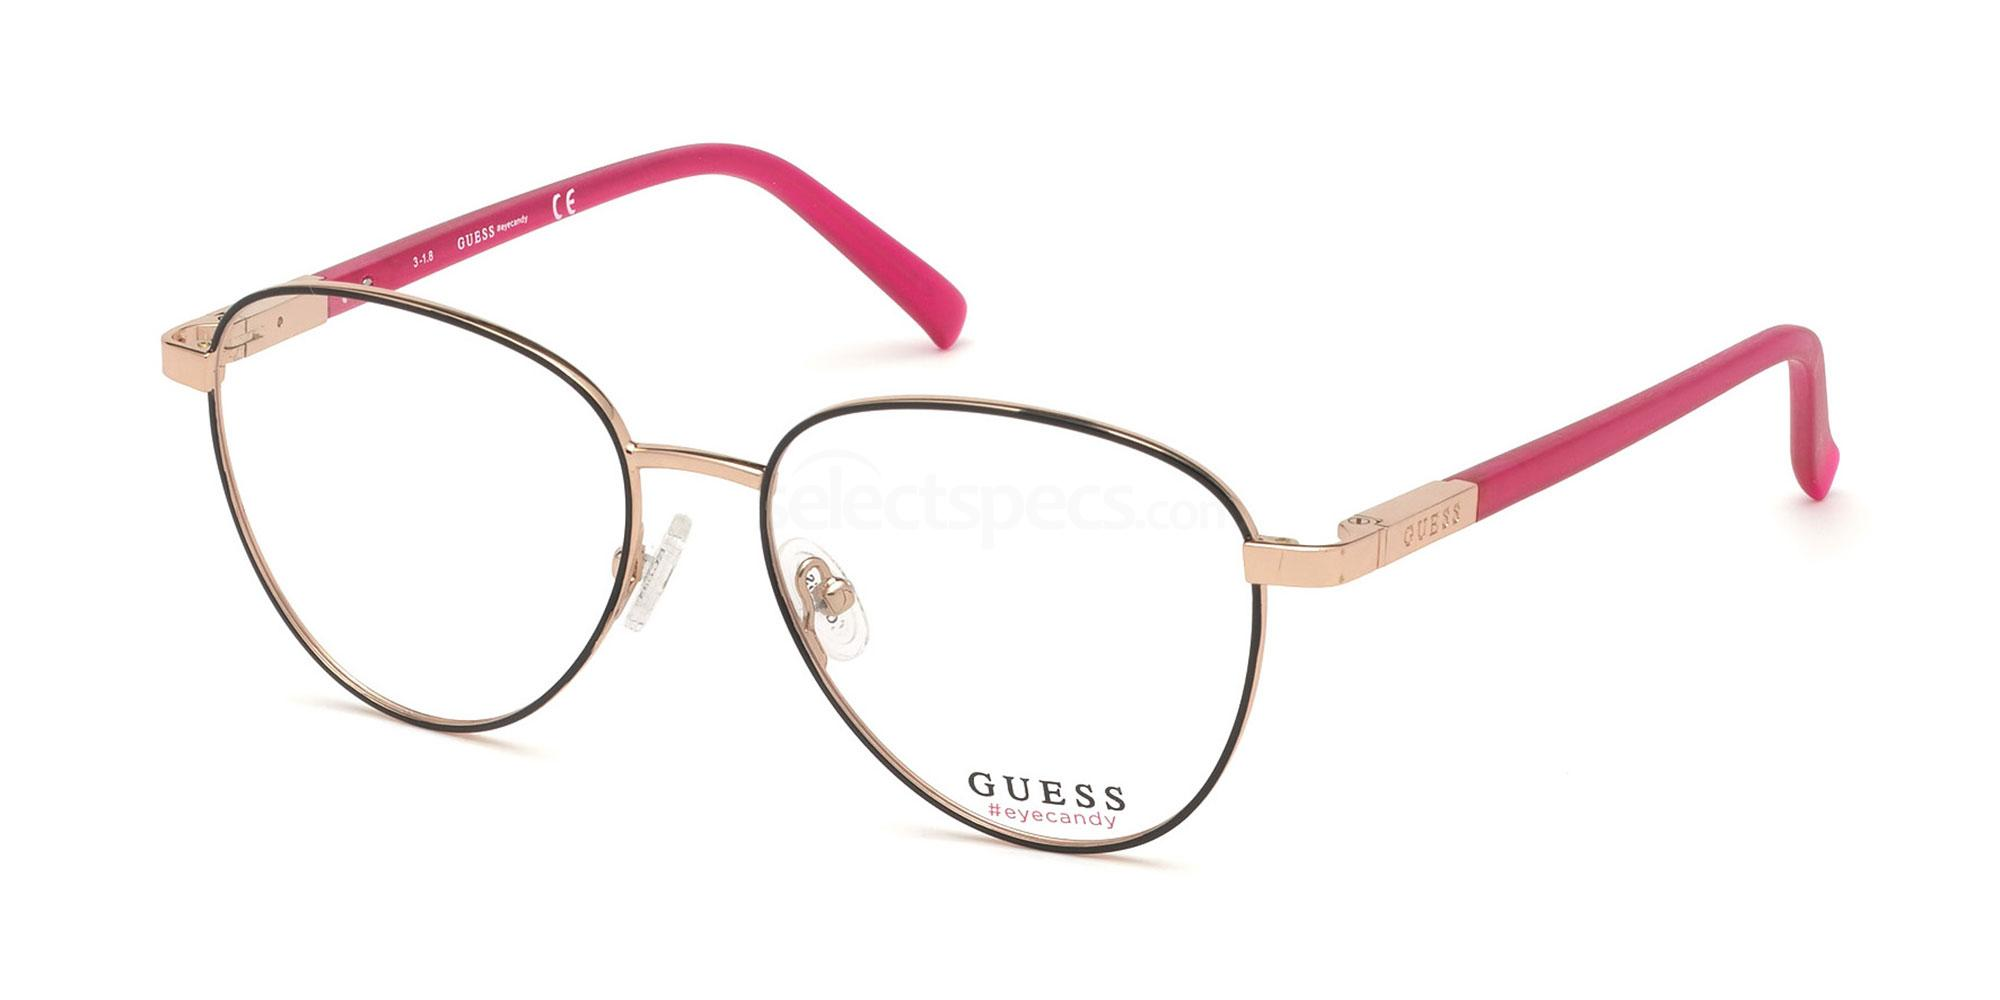 001 GU3037 Glasses, Guess